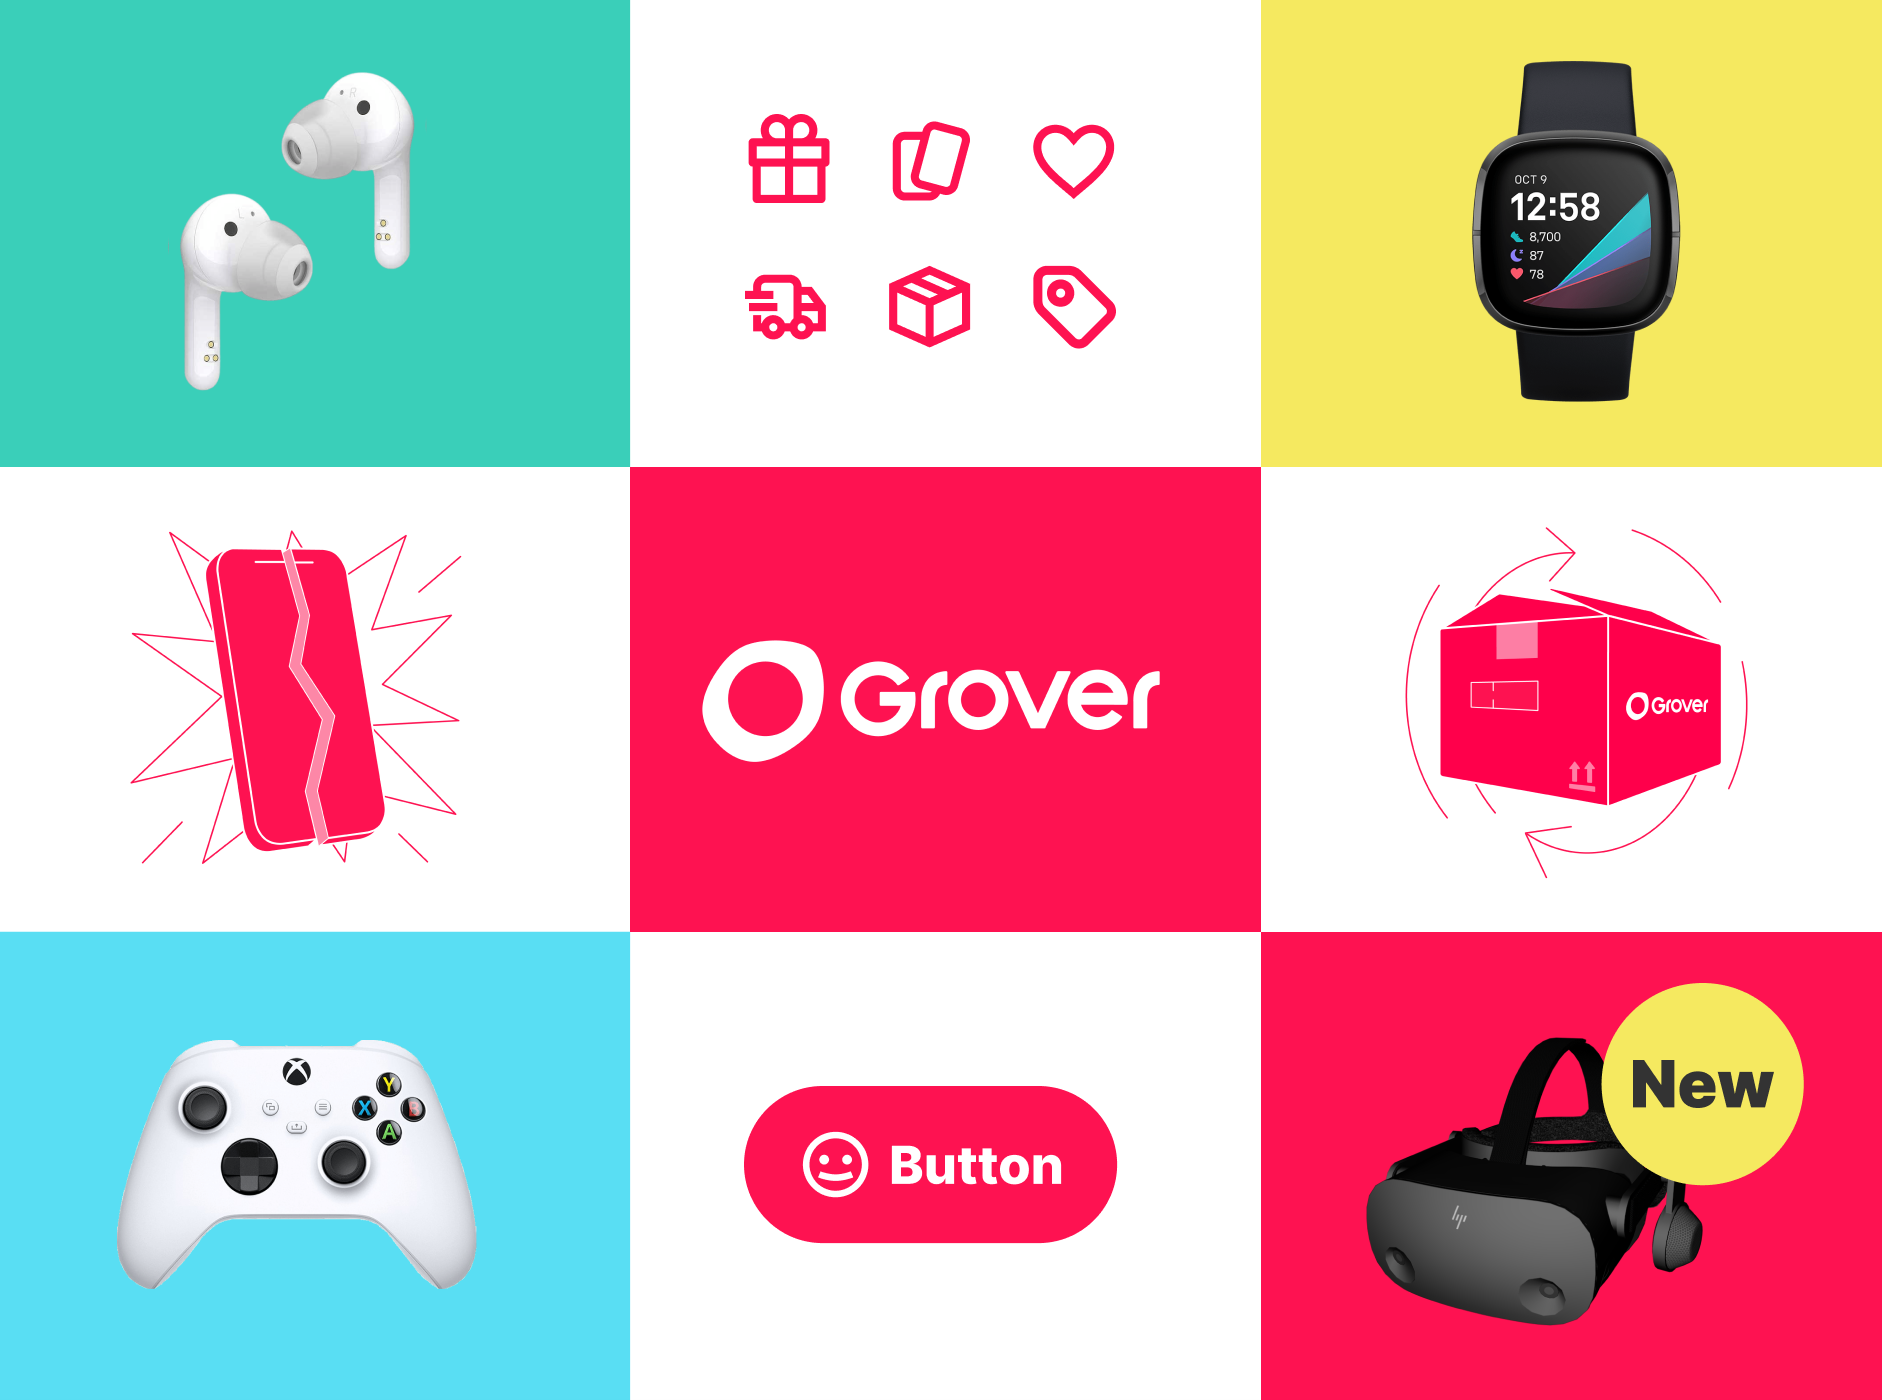 Rent your device instead of buying it: Grover and the era of upgrades